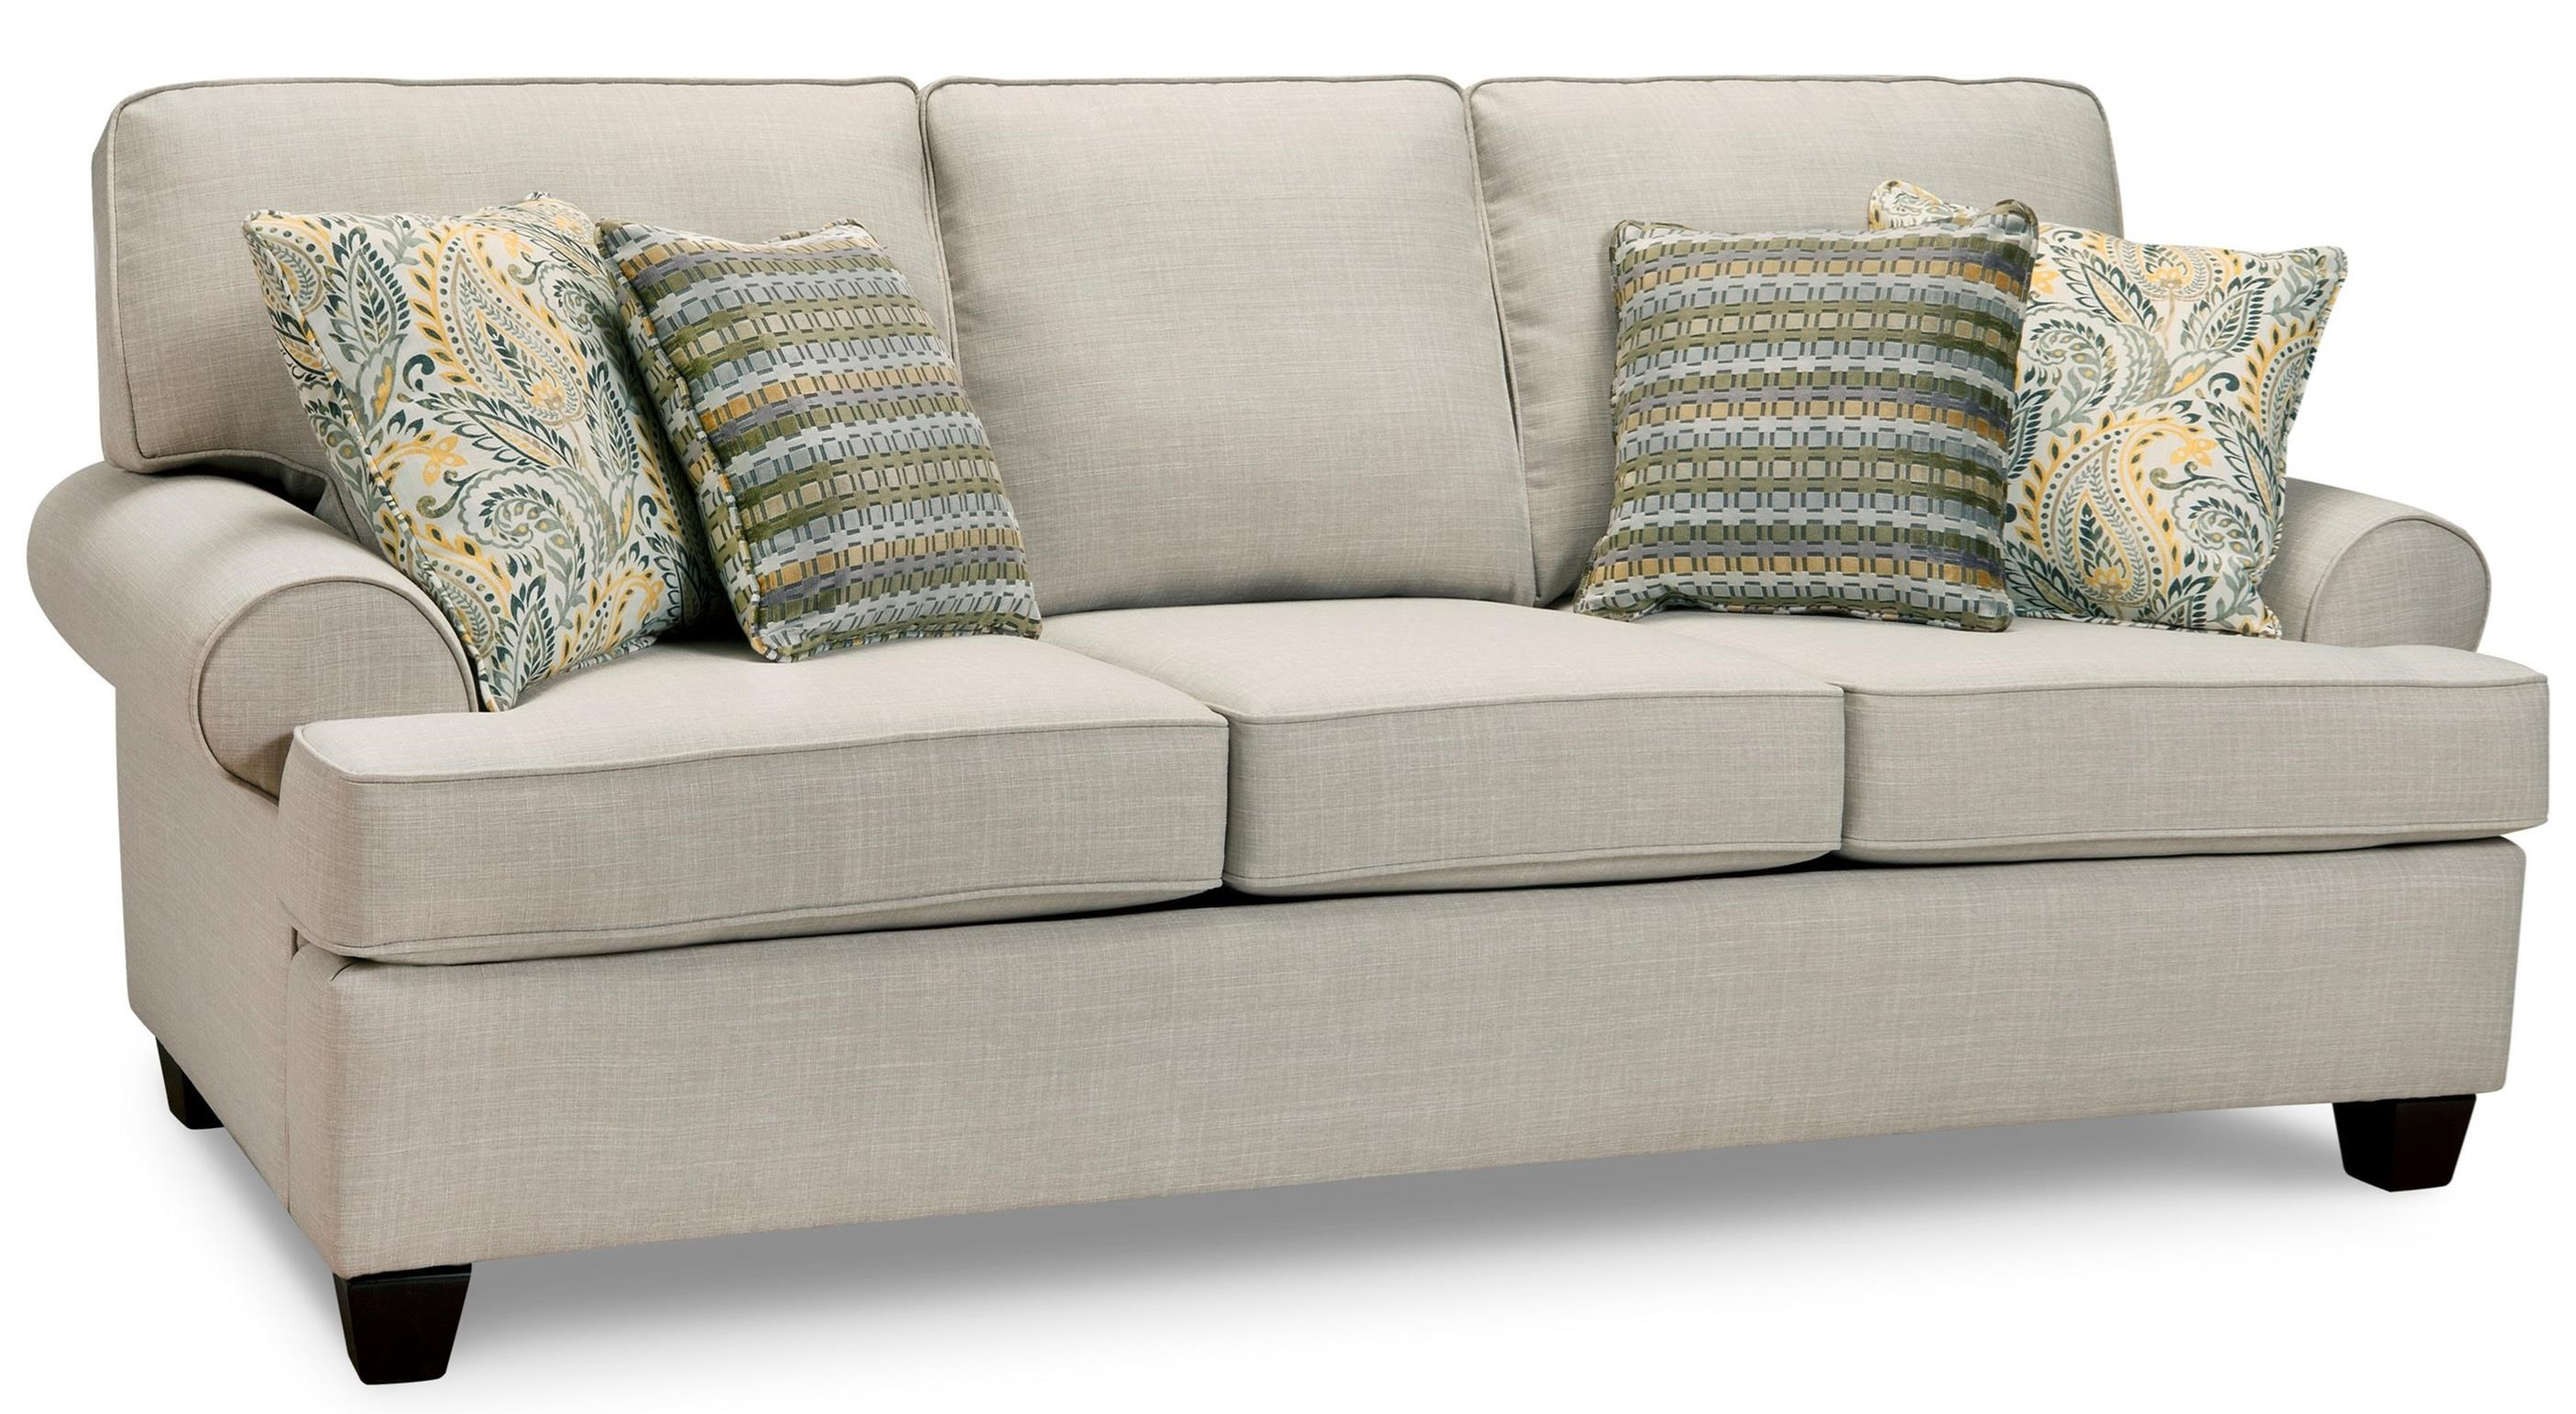 9698 Sofa by Superstyle at Jordan's Home Furnishings